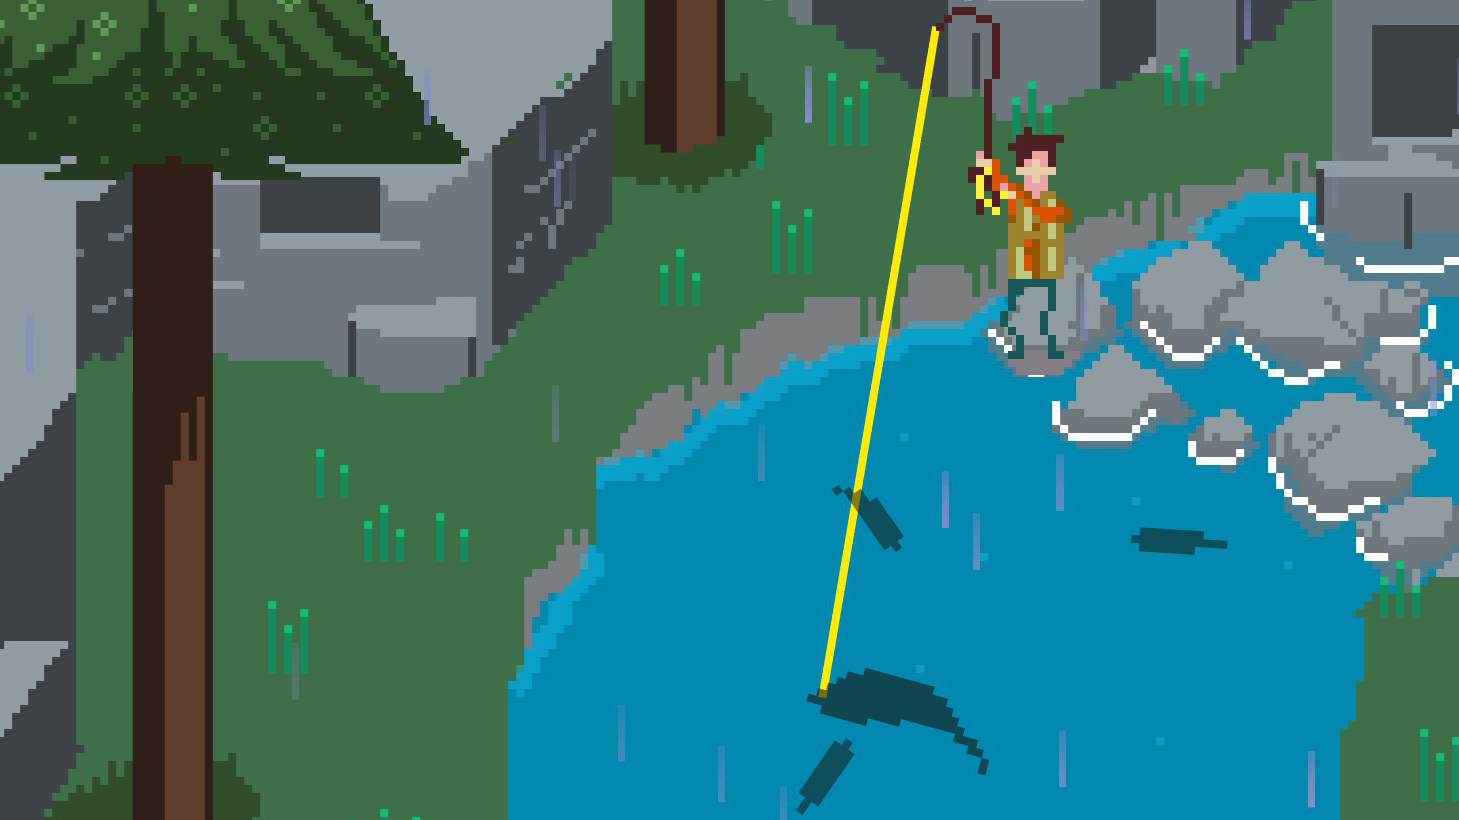 Sometimes you just need a relaxing pixel art fishing game